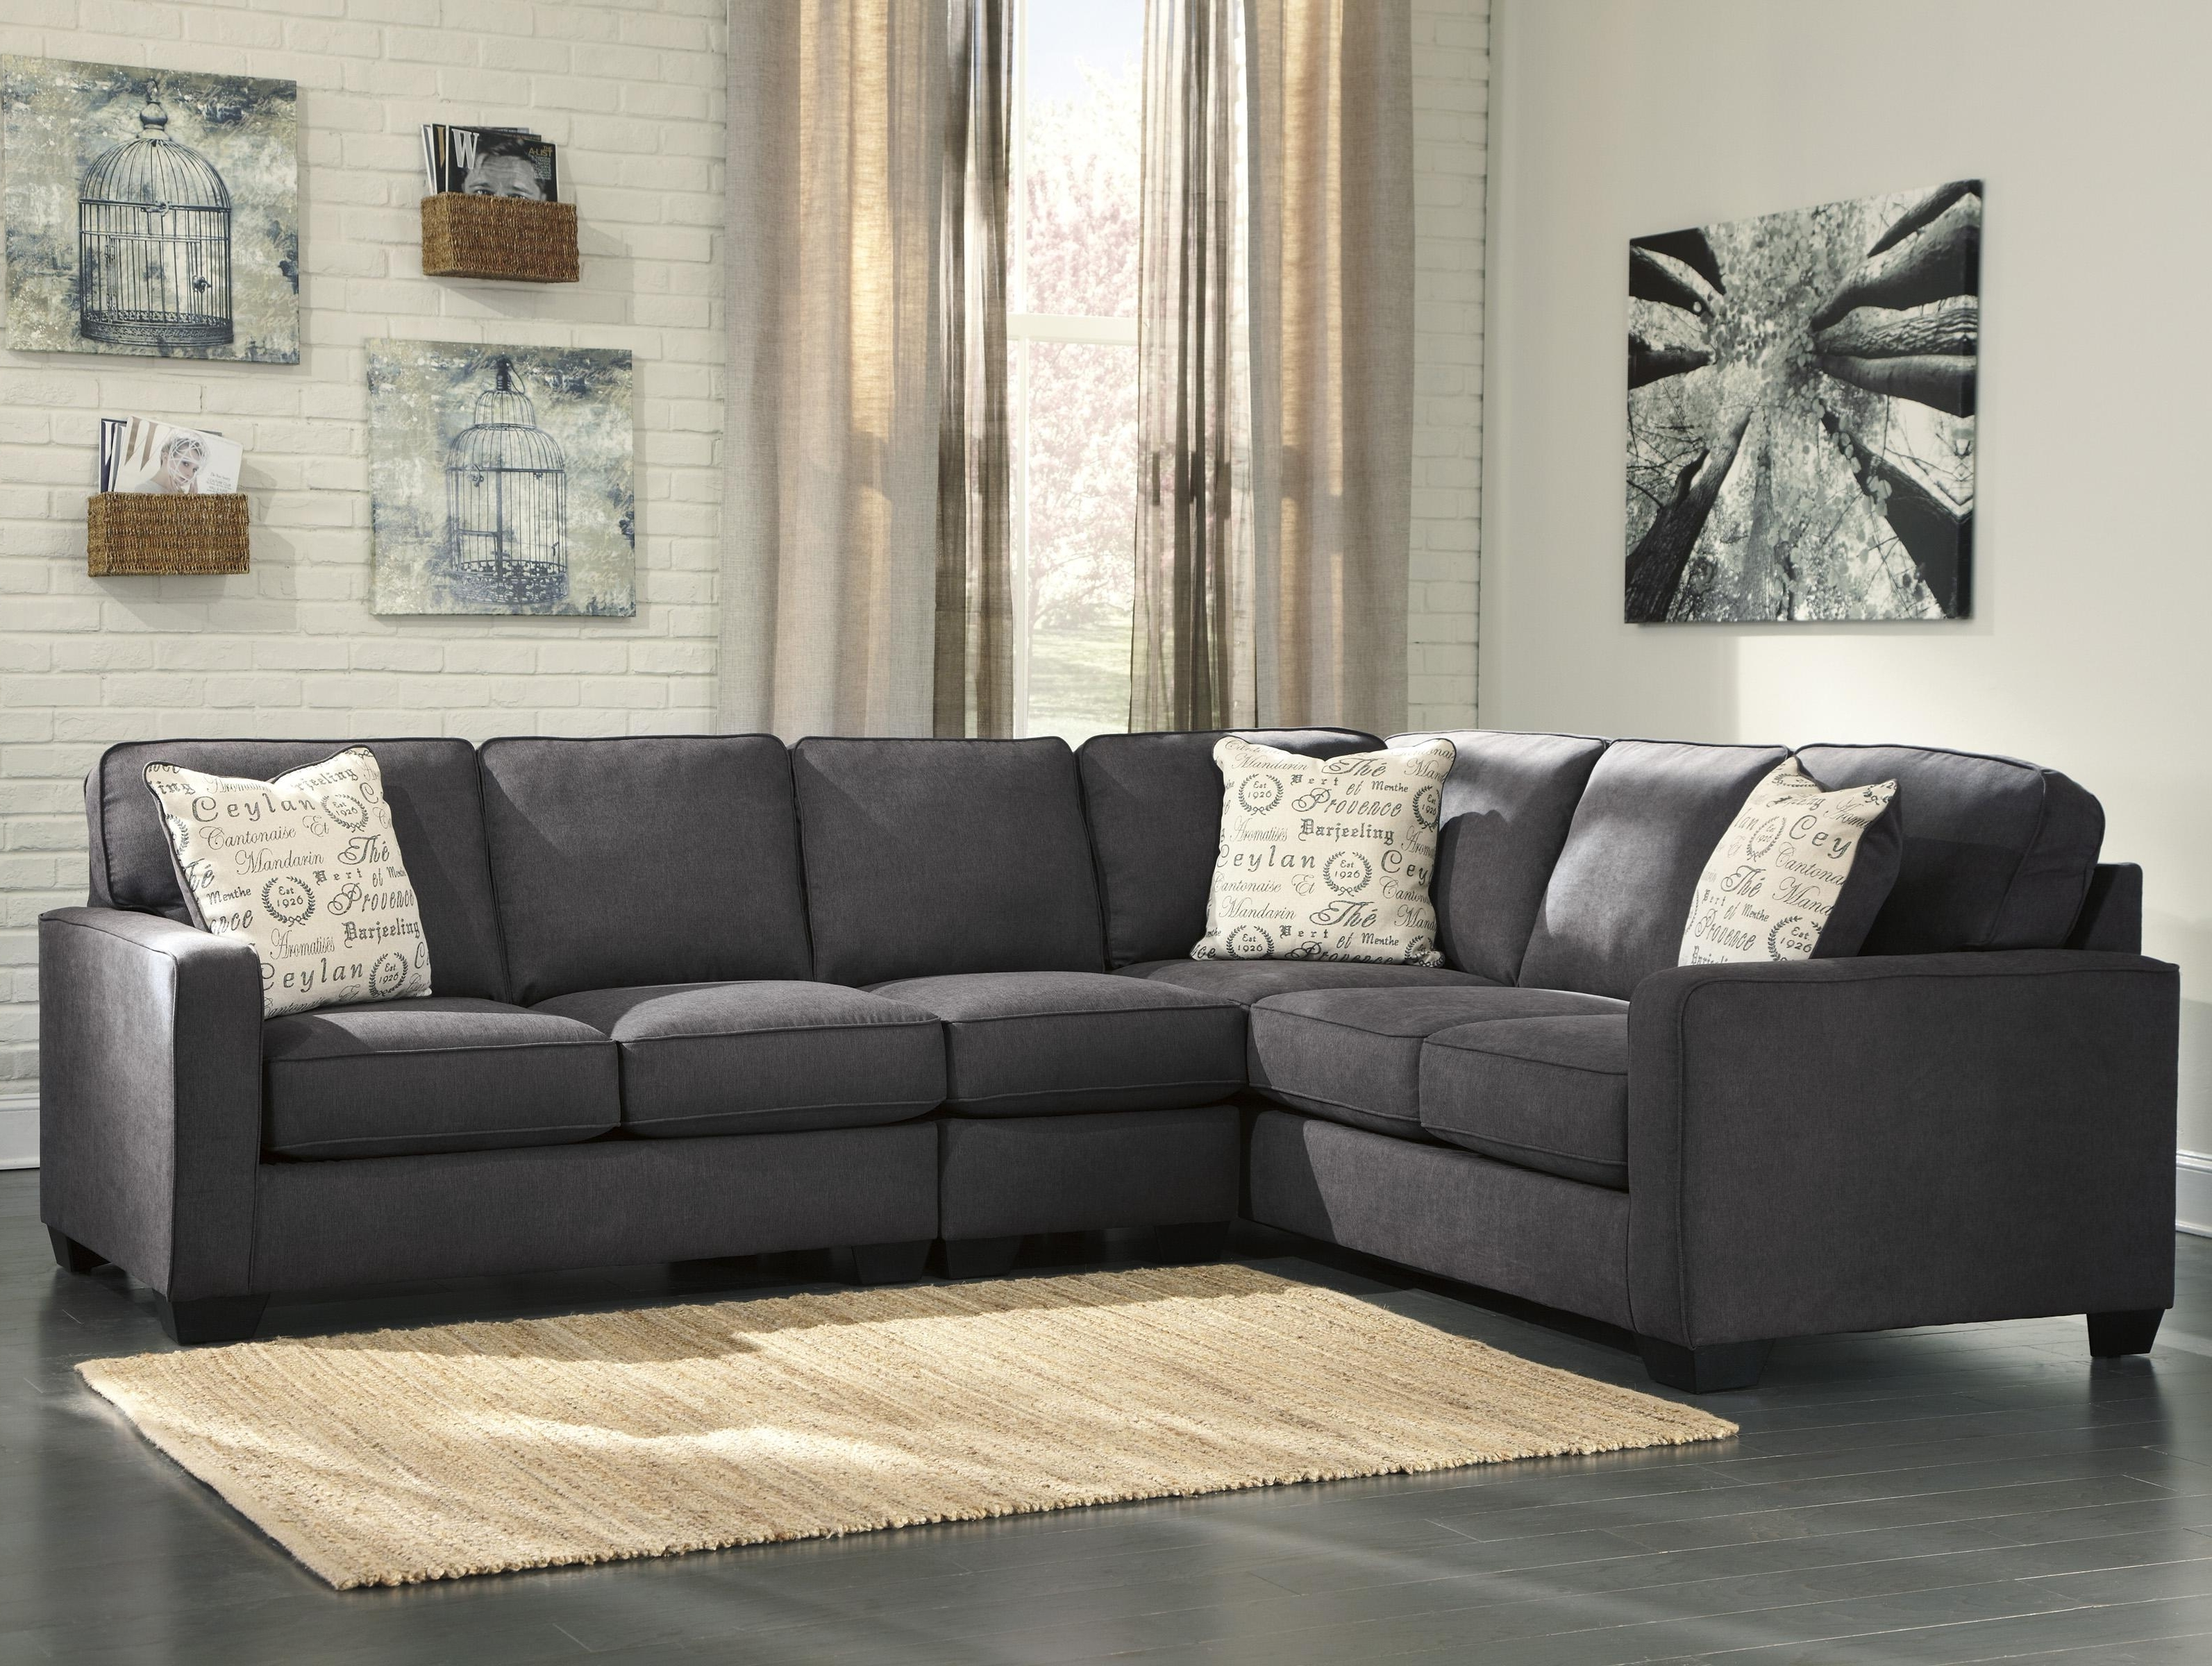 Ashley Signature Design Alenya – Charcoal 3 Piece Sectional With Inside 2018 Sectional Sofas At Ashley (View 6 of 15)